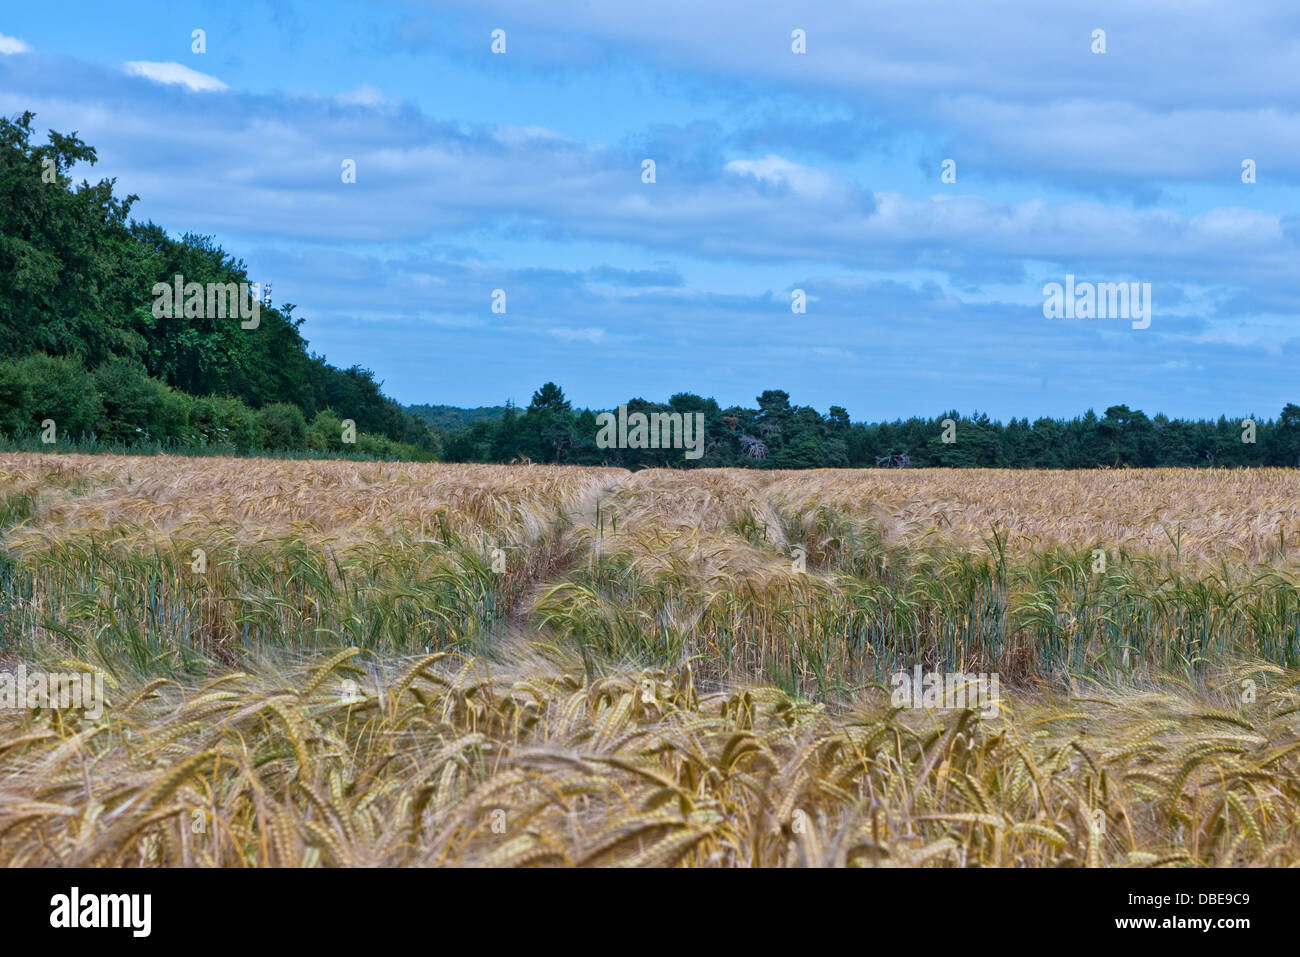 A field of barley the A135 to Thetford, Norfolk. England. - Stock Image